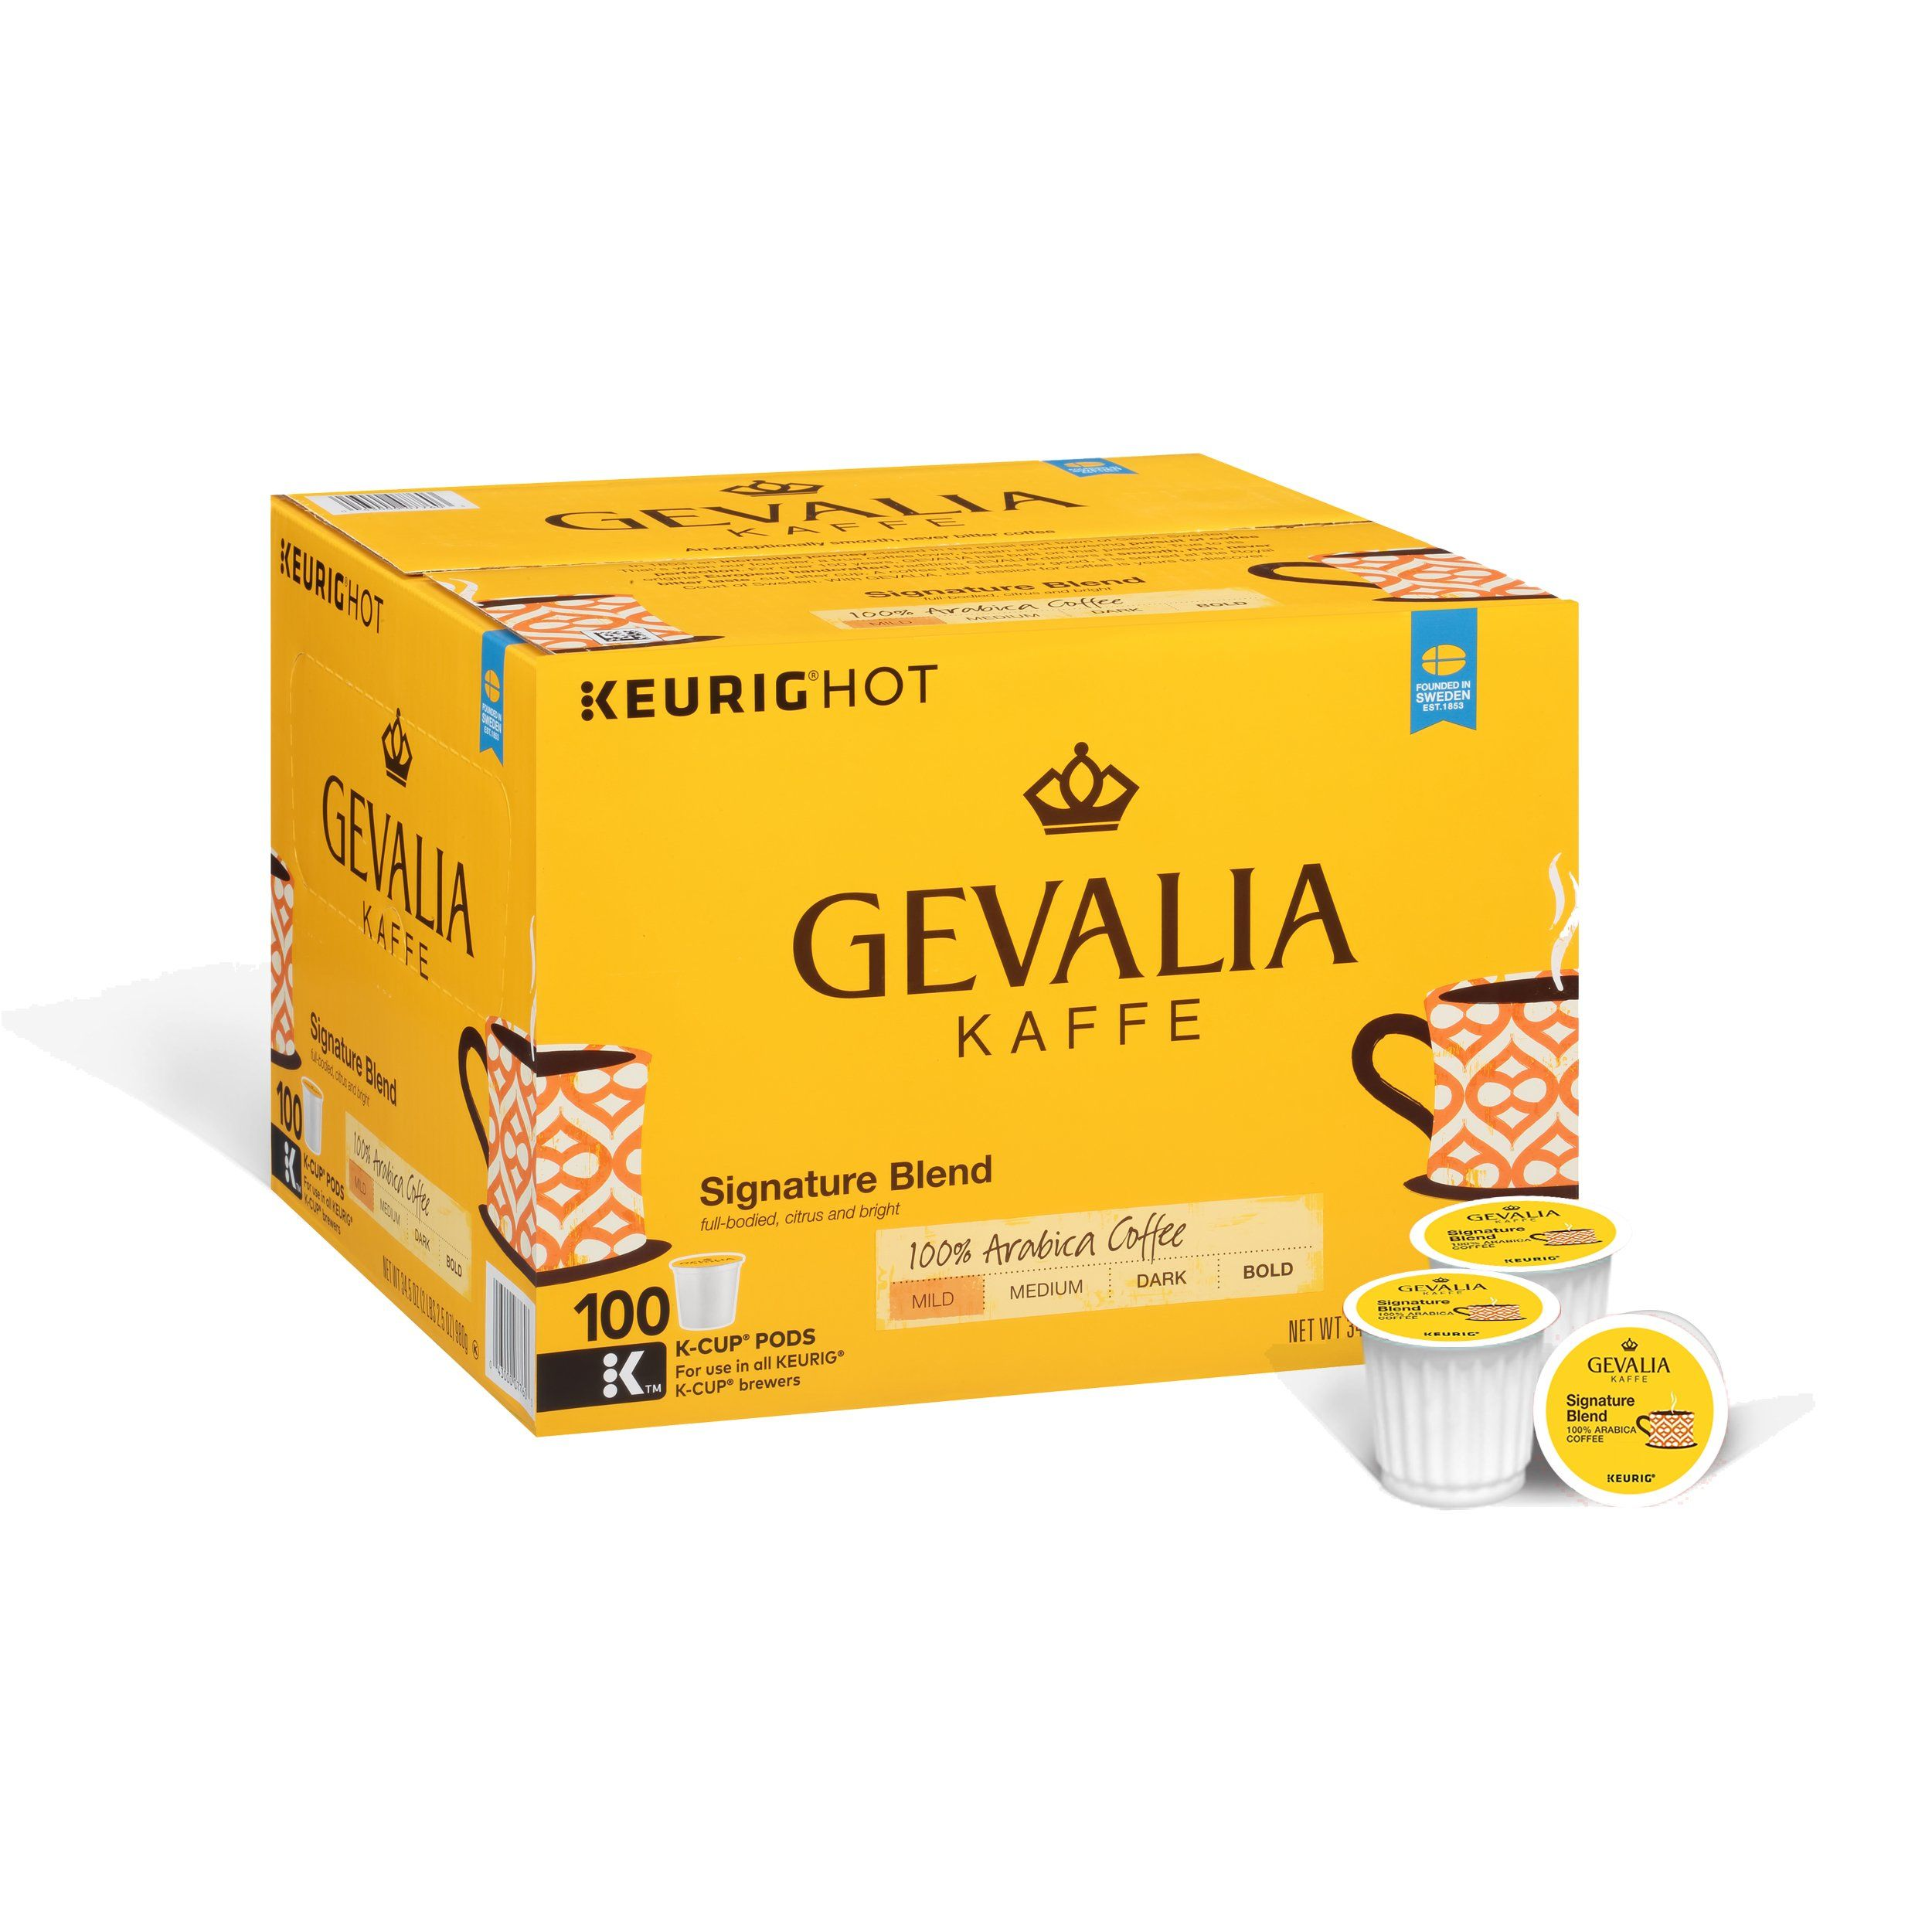 Gevalia Signature Blend Coffee KCUP Pods 100 Count * Be